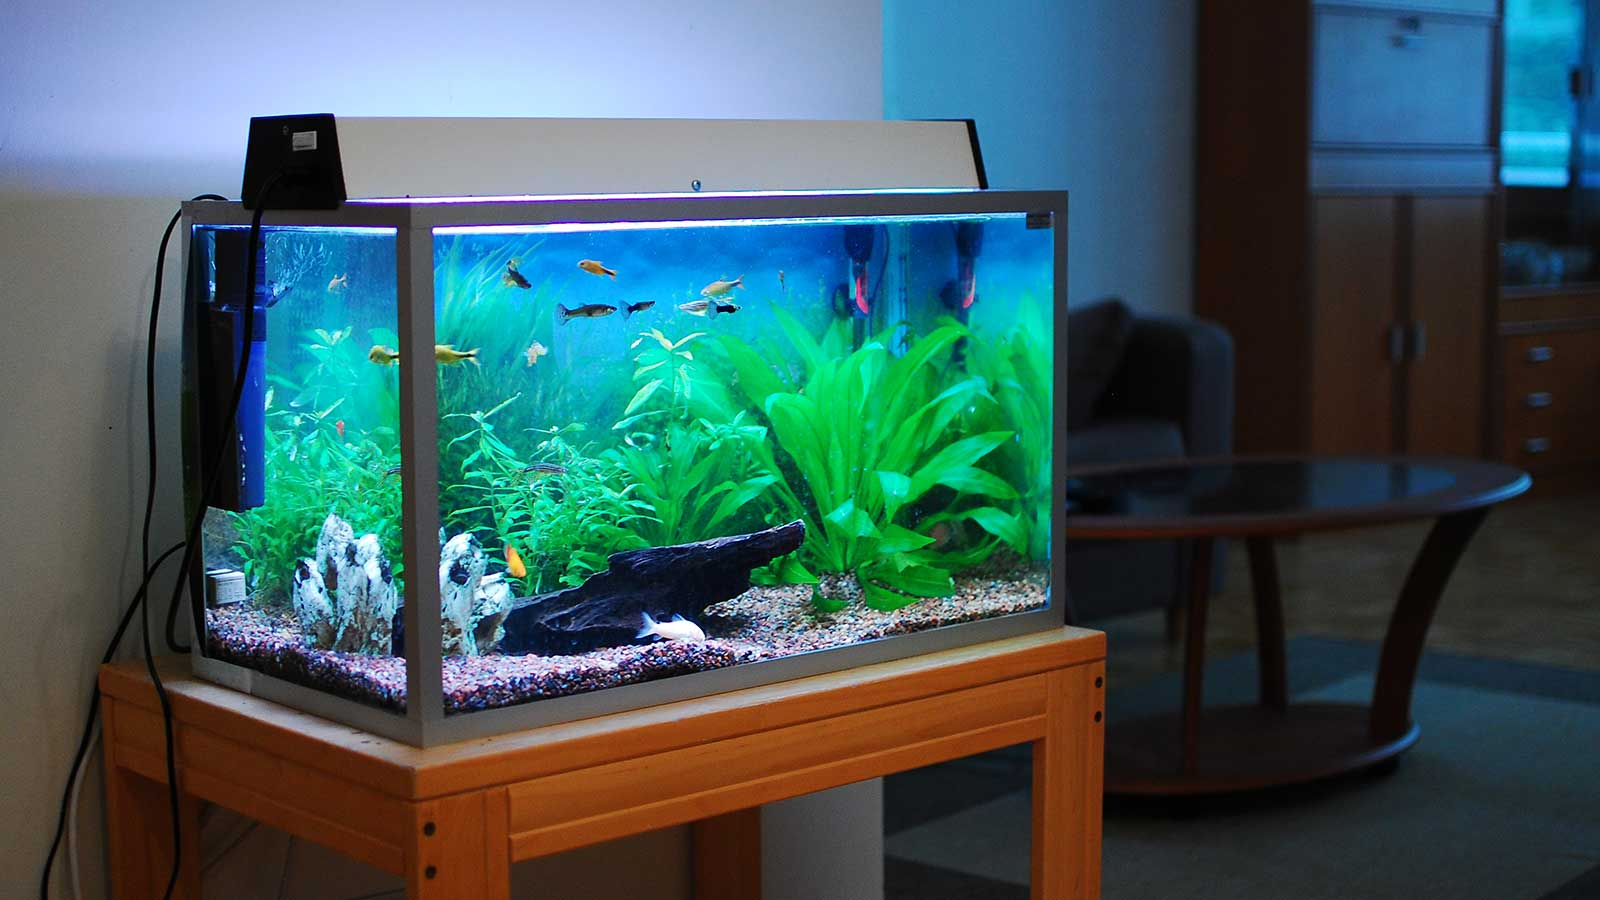 Tips on How to Buy an Aquarium